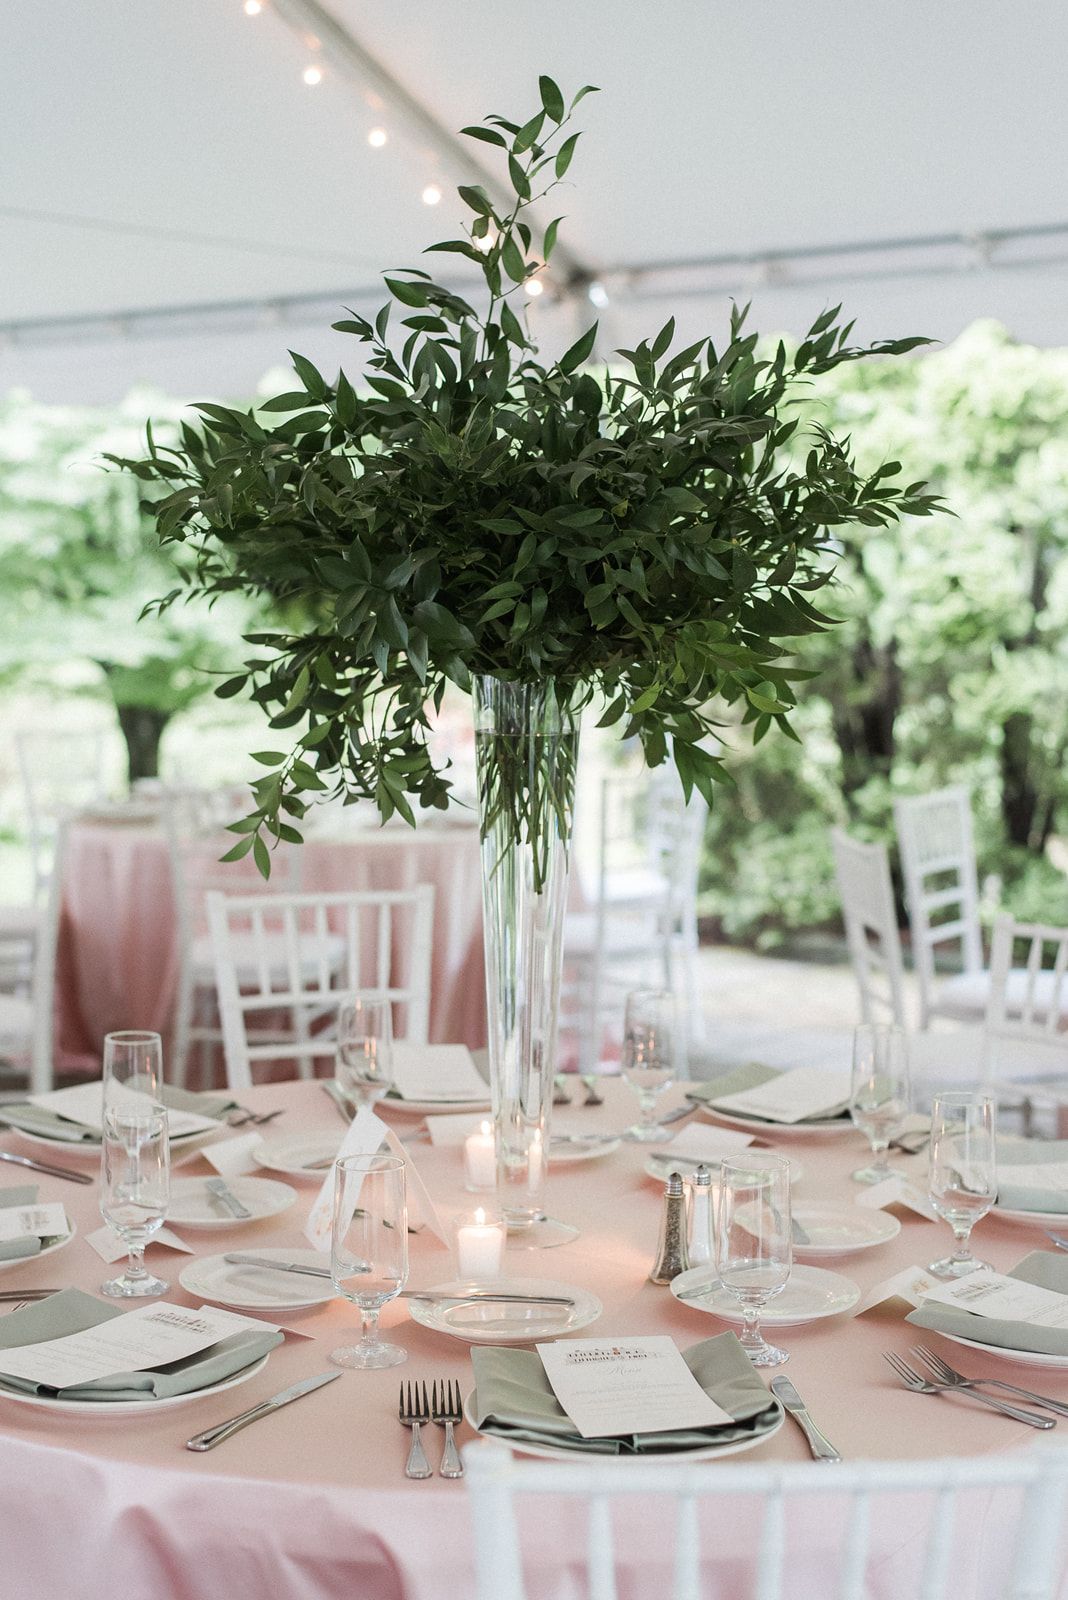 Green and White Tall Floral Centerpiece |Tall Green Centerpiece